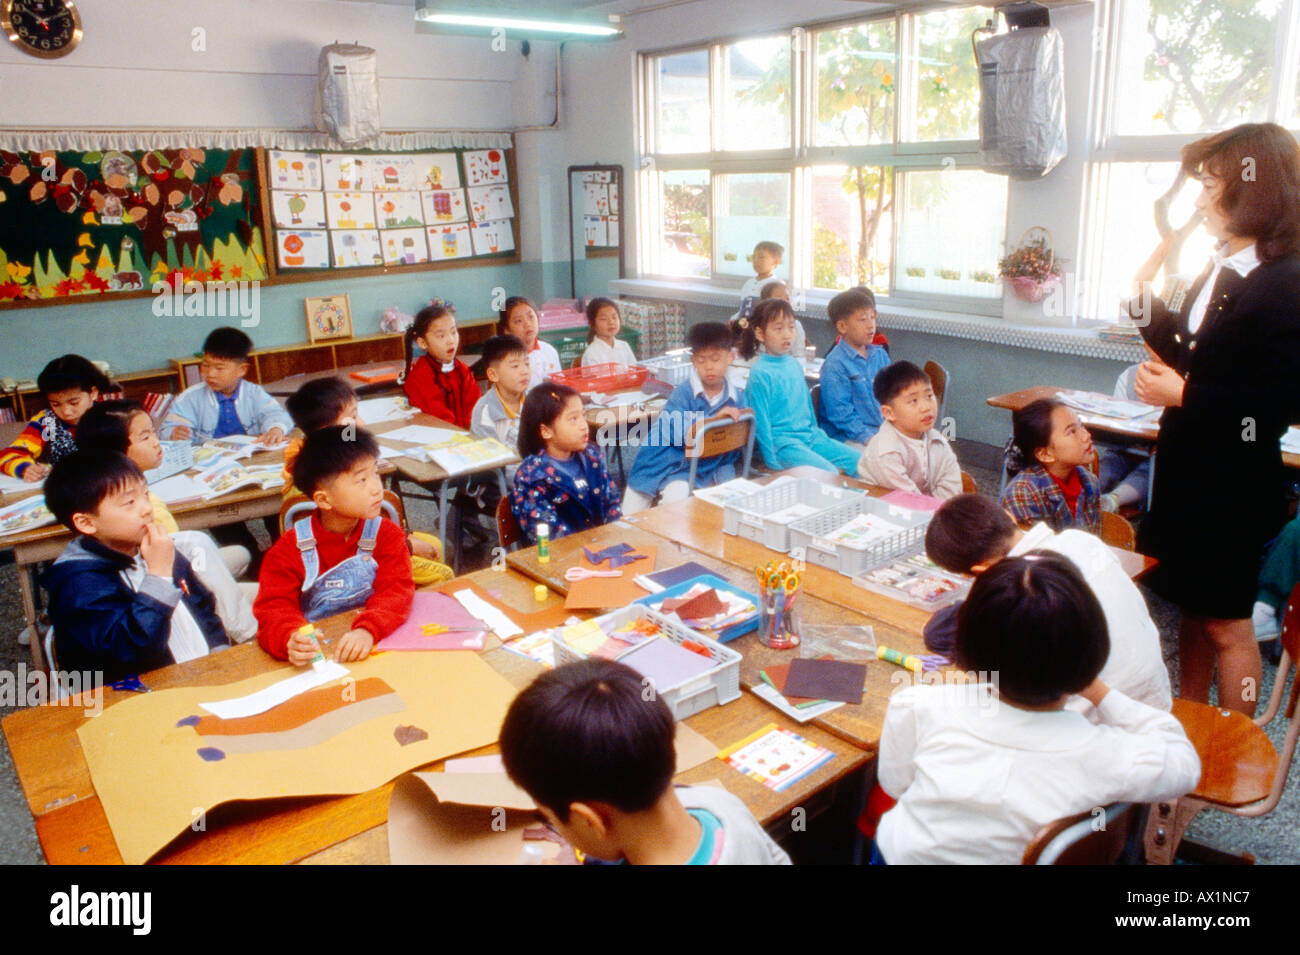 South korea school children stock photos south korea for Craft schools in nc